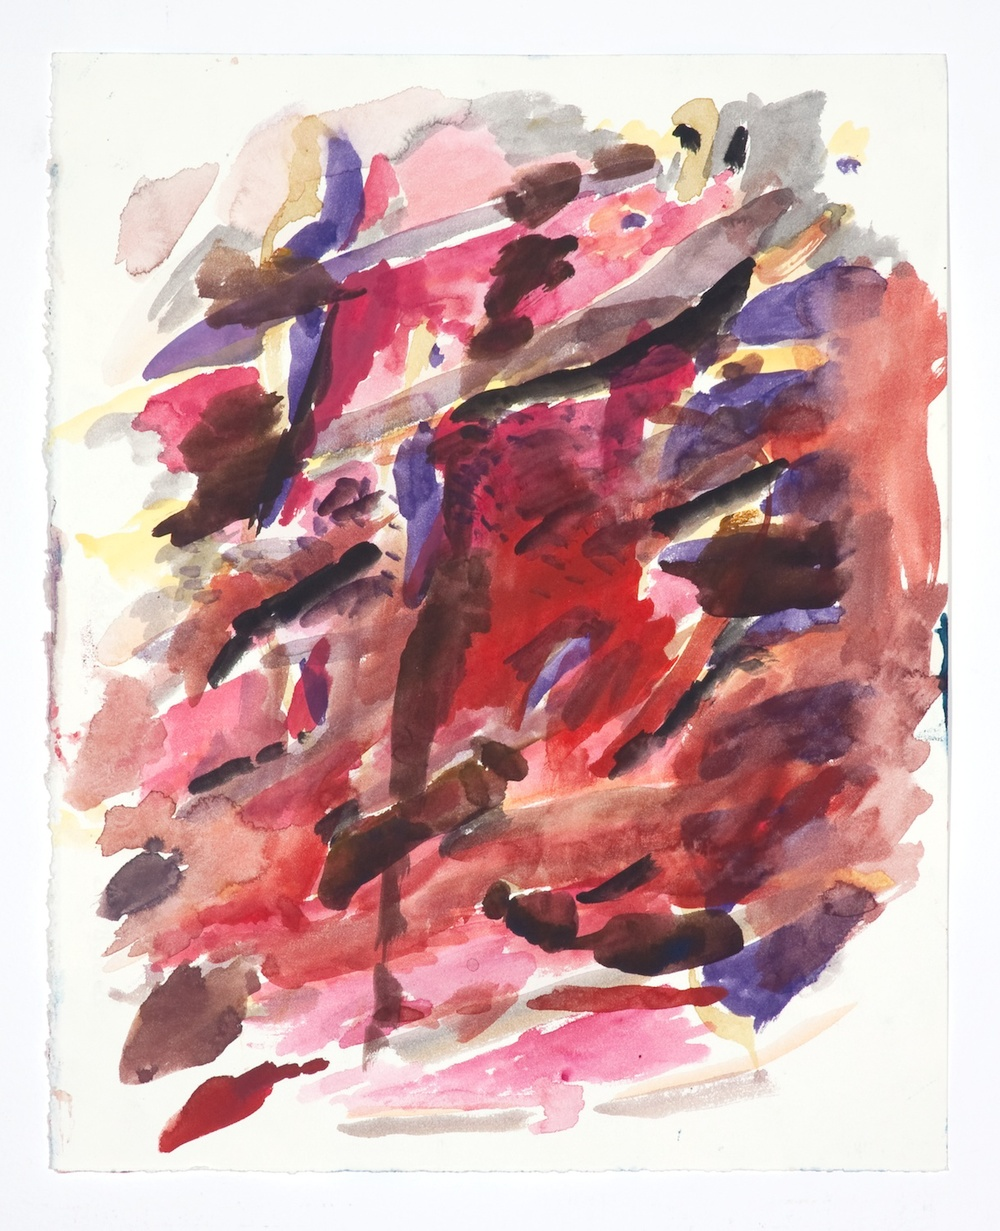 Jon Pestoni  Untitled  2009 Gouache on paper 14h x 11w in JP054